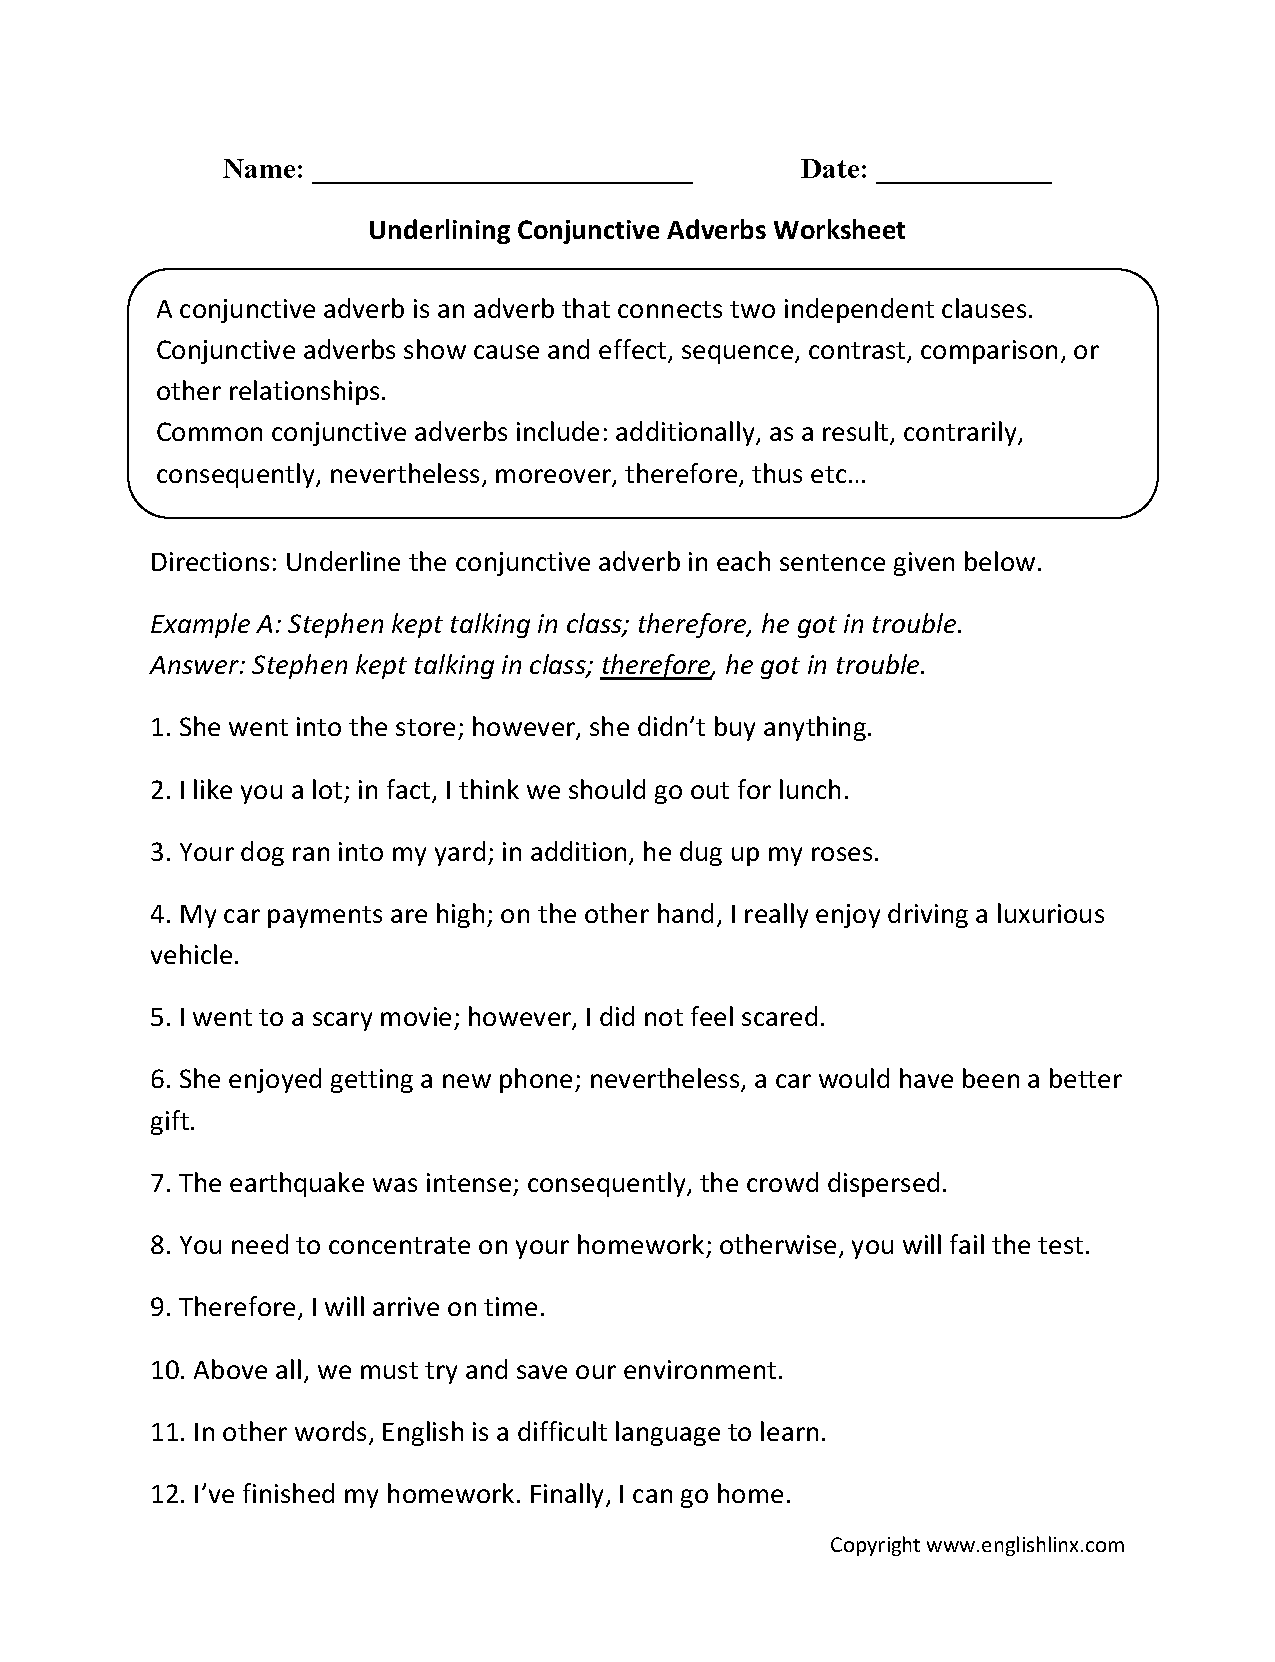 Proatmealus  Marvellous Englishlinxcom  Conjunctions Worksheets With Engaging Worksheet With Alluring Multiplication Tables Worksheet Printable Also Free Printable English Grammar Worksheets For Grade  In Addition Reflective Symmetry Worksheet And Jr Kg Worksheets As Well As Super Teacher Worksheets Symmetry Additionally Continue The Pattern Worksheet From Englishlinxcom With Proatmealus  Engaging Englishlinxcom  Conjunctions Worksheets With Alluring Worksheet And Marvellous Multiplication Tables Worksheet Printable Also Free Printable English Grammar Worksheets For Grade  In Addition Reflective Symmetry Worksheet From Englishlinxcom